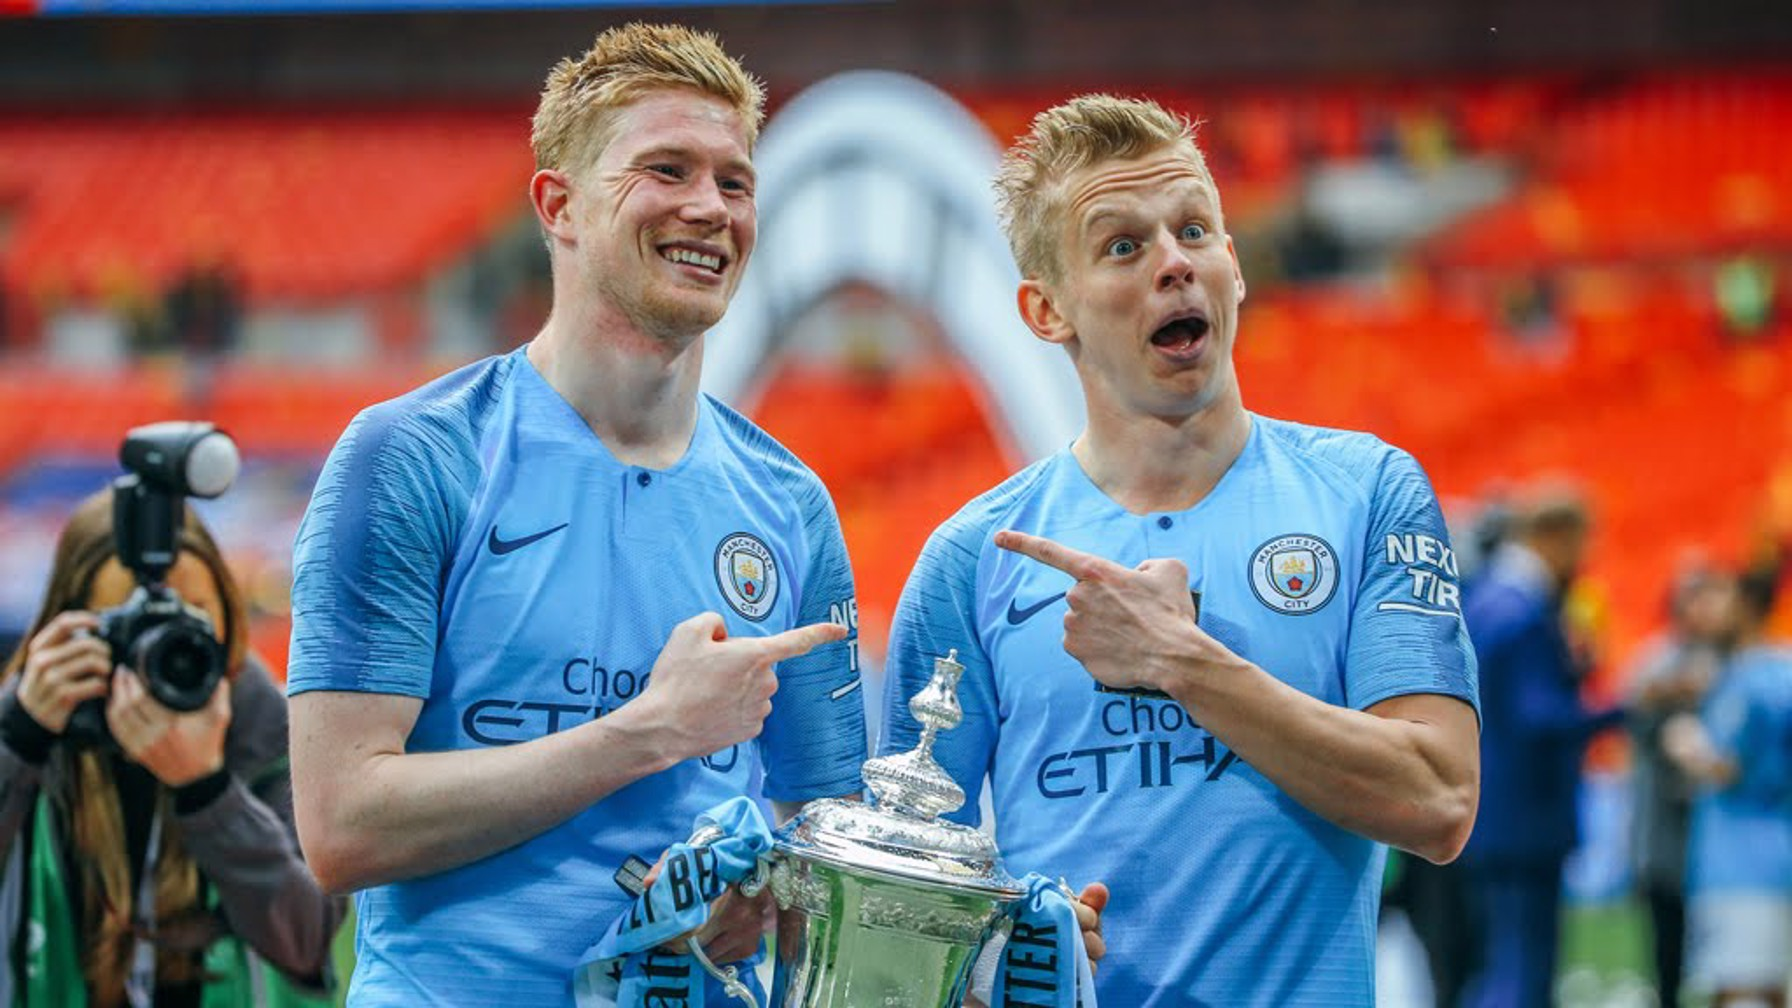 IDENTICAL: Oleksandr Zinchenko and KDB strike a pose